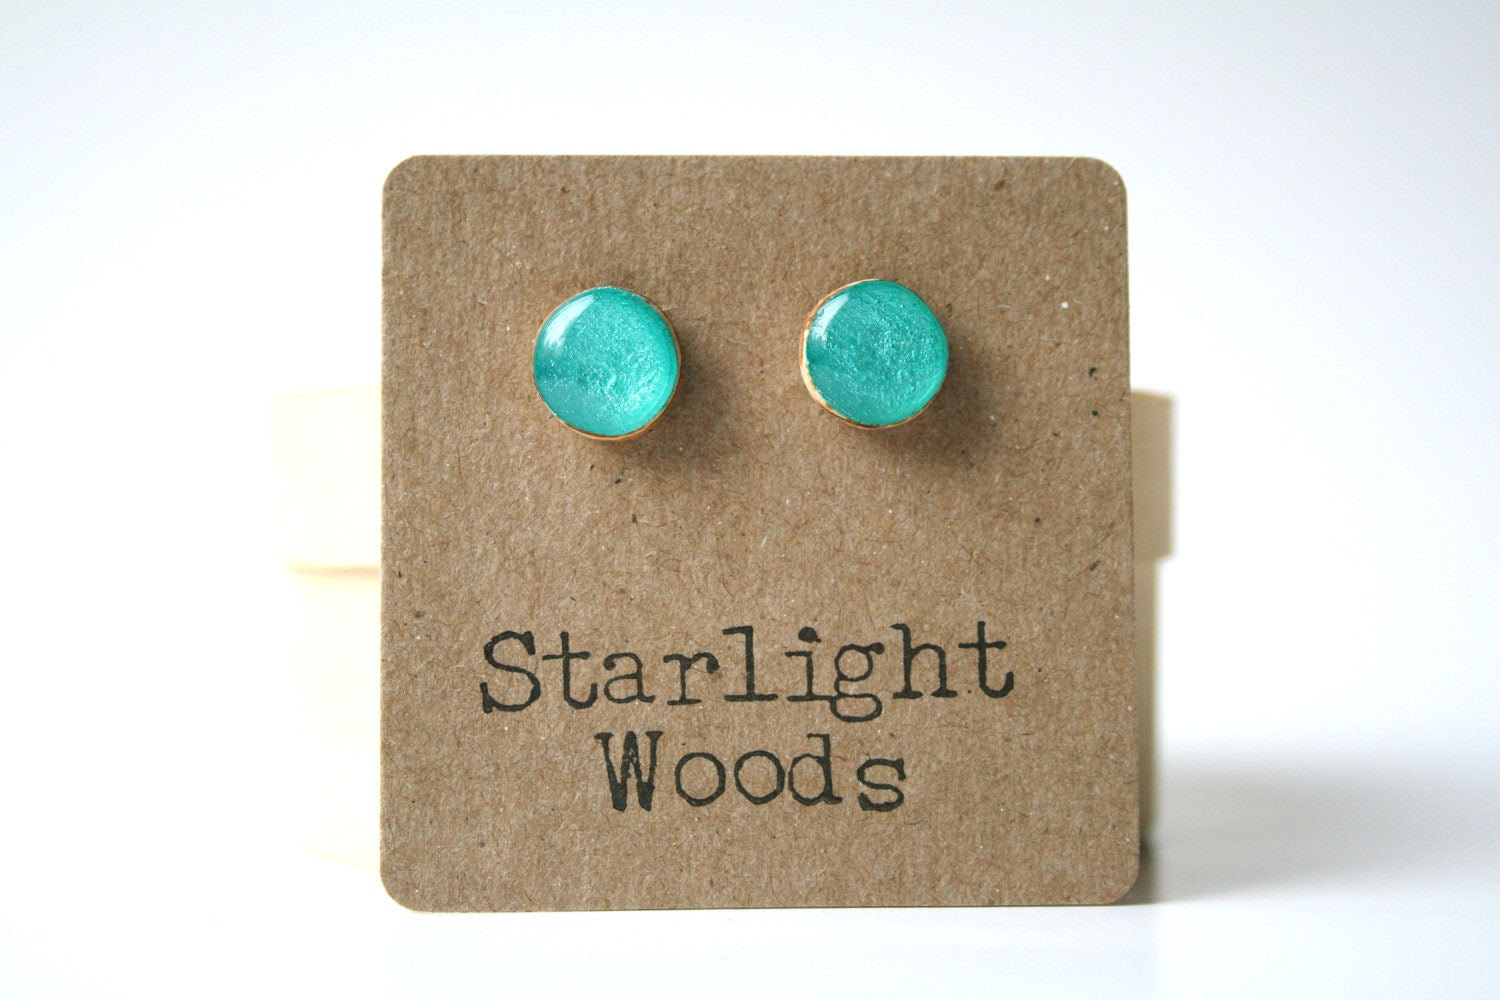 Aqua studs. Teal post earrings. Teal studs. Teal jewelry. Wood jewelry. Wood earrings. Starlight woods. Eco friendly jewelry. - starlightwoods